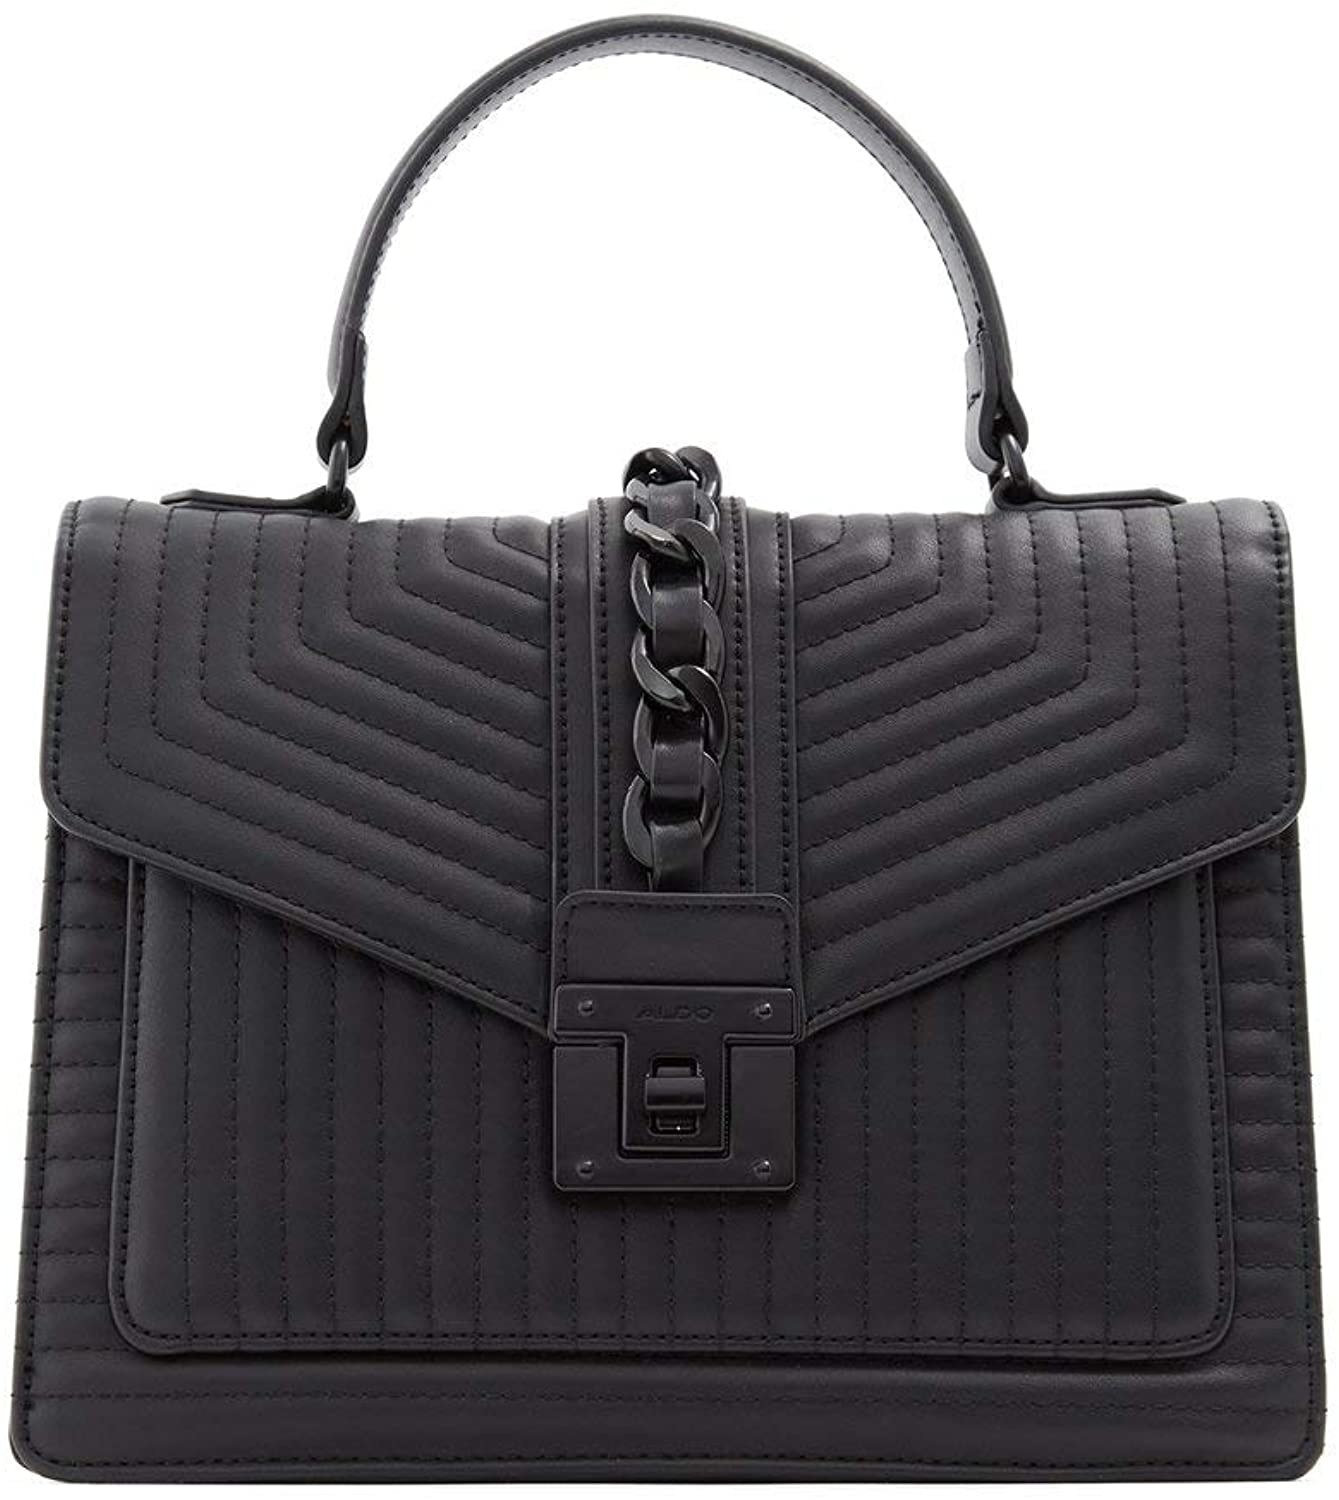 The black quilted bag with chain detail